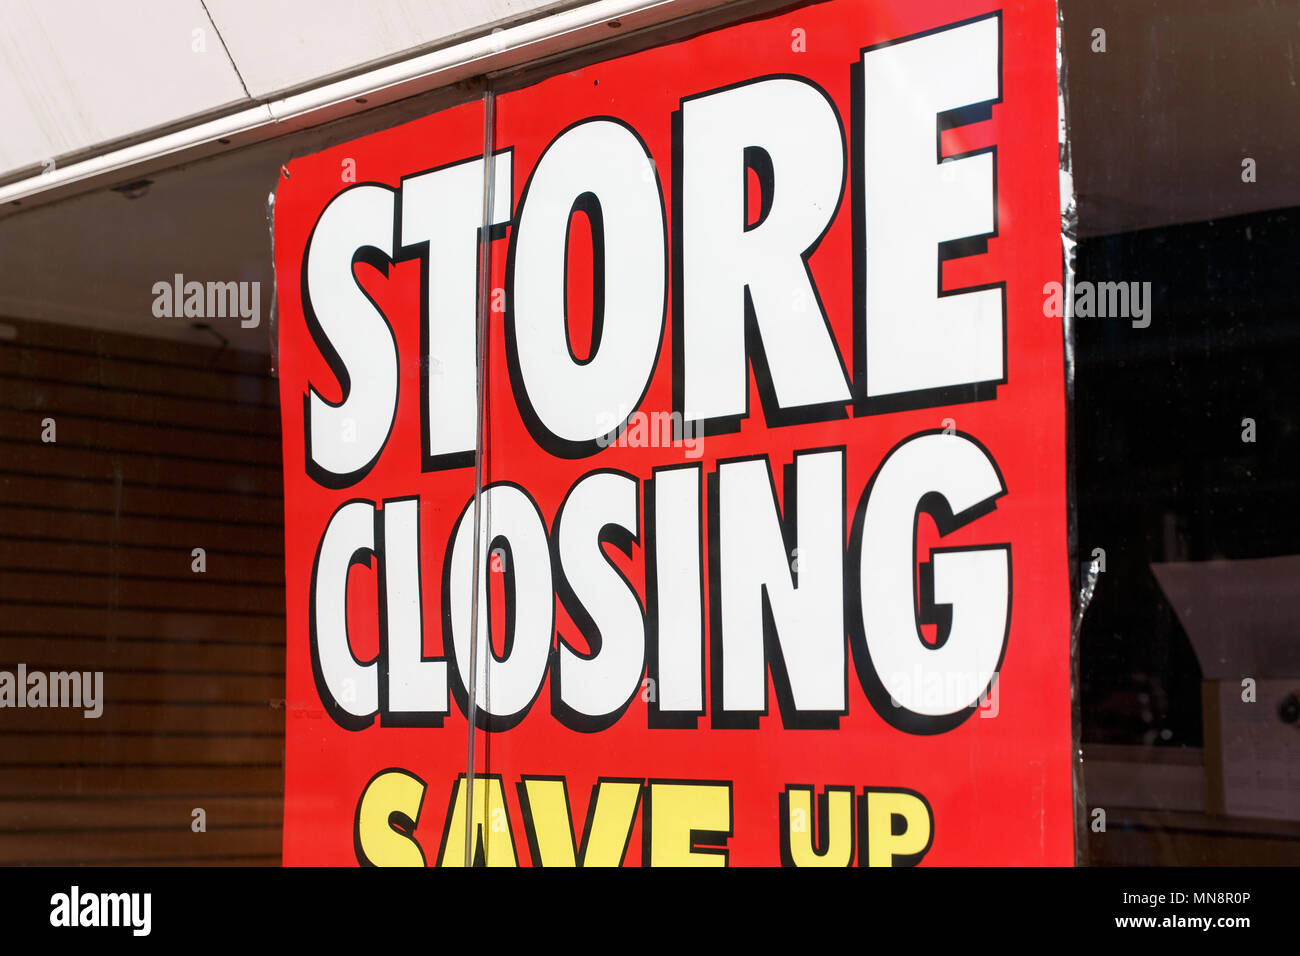 A high street retailer advertising a store closing down sale. - Stock Image